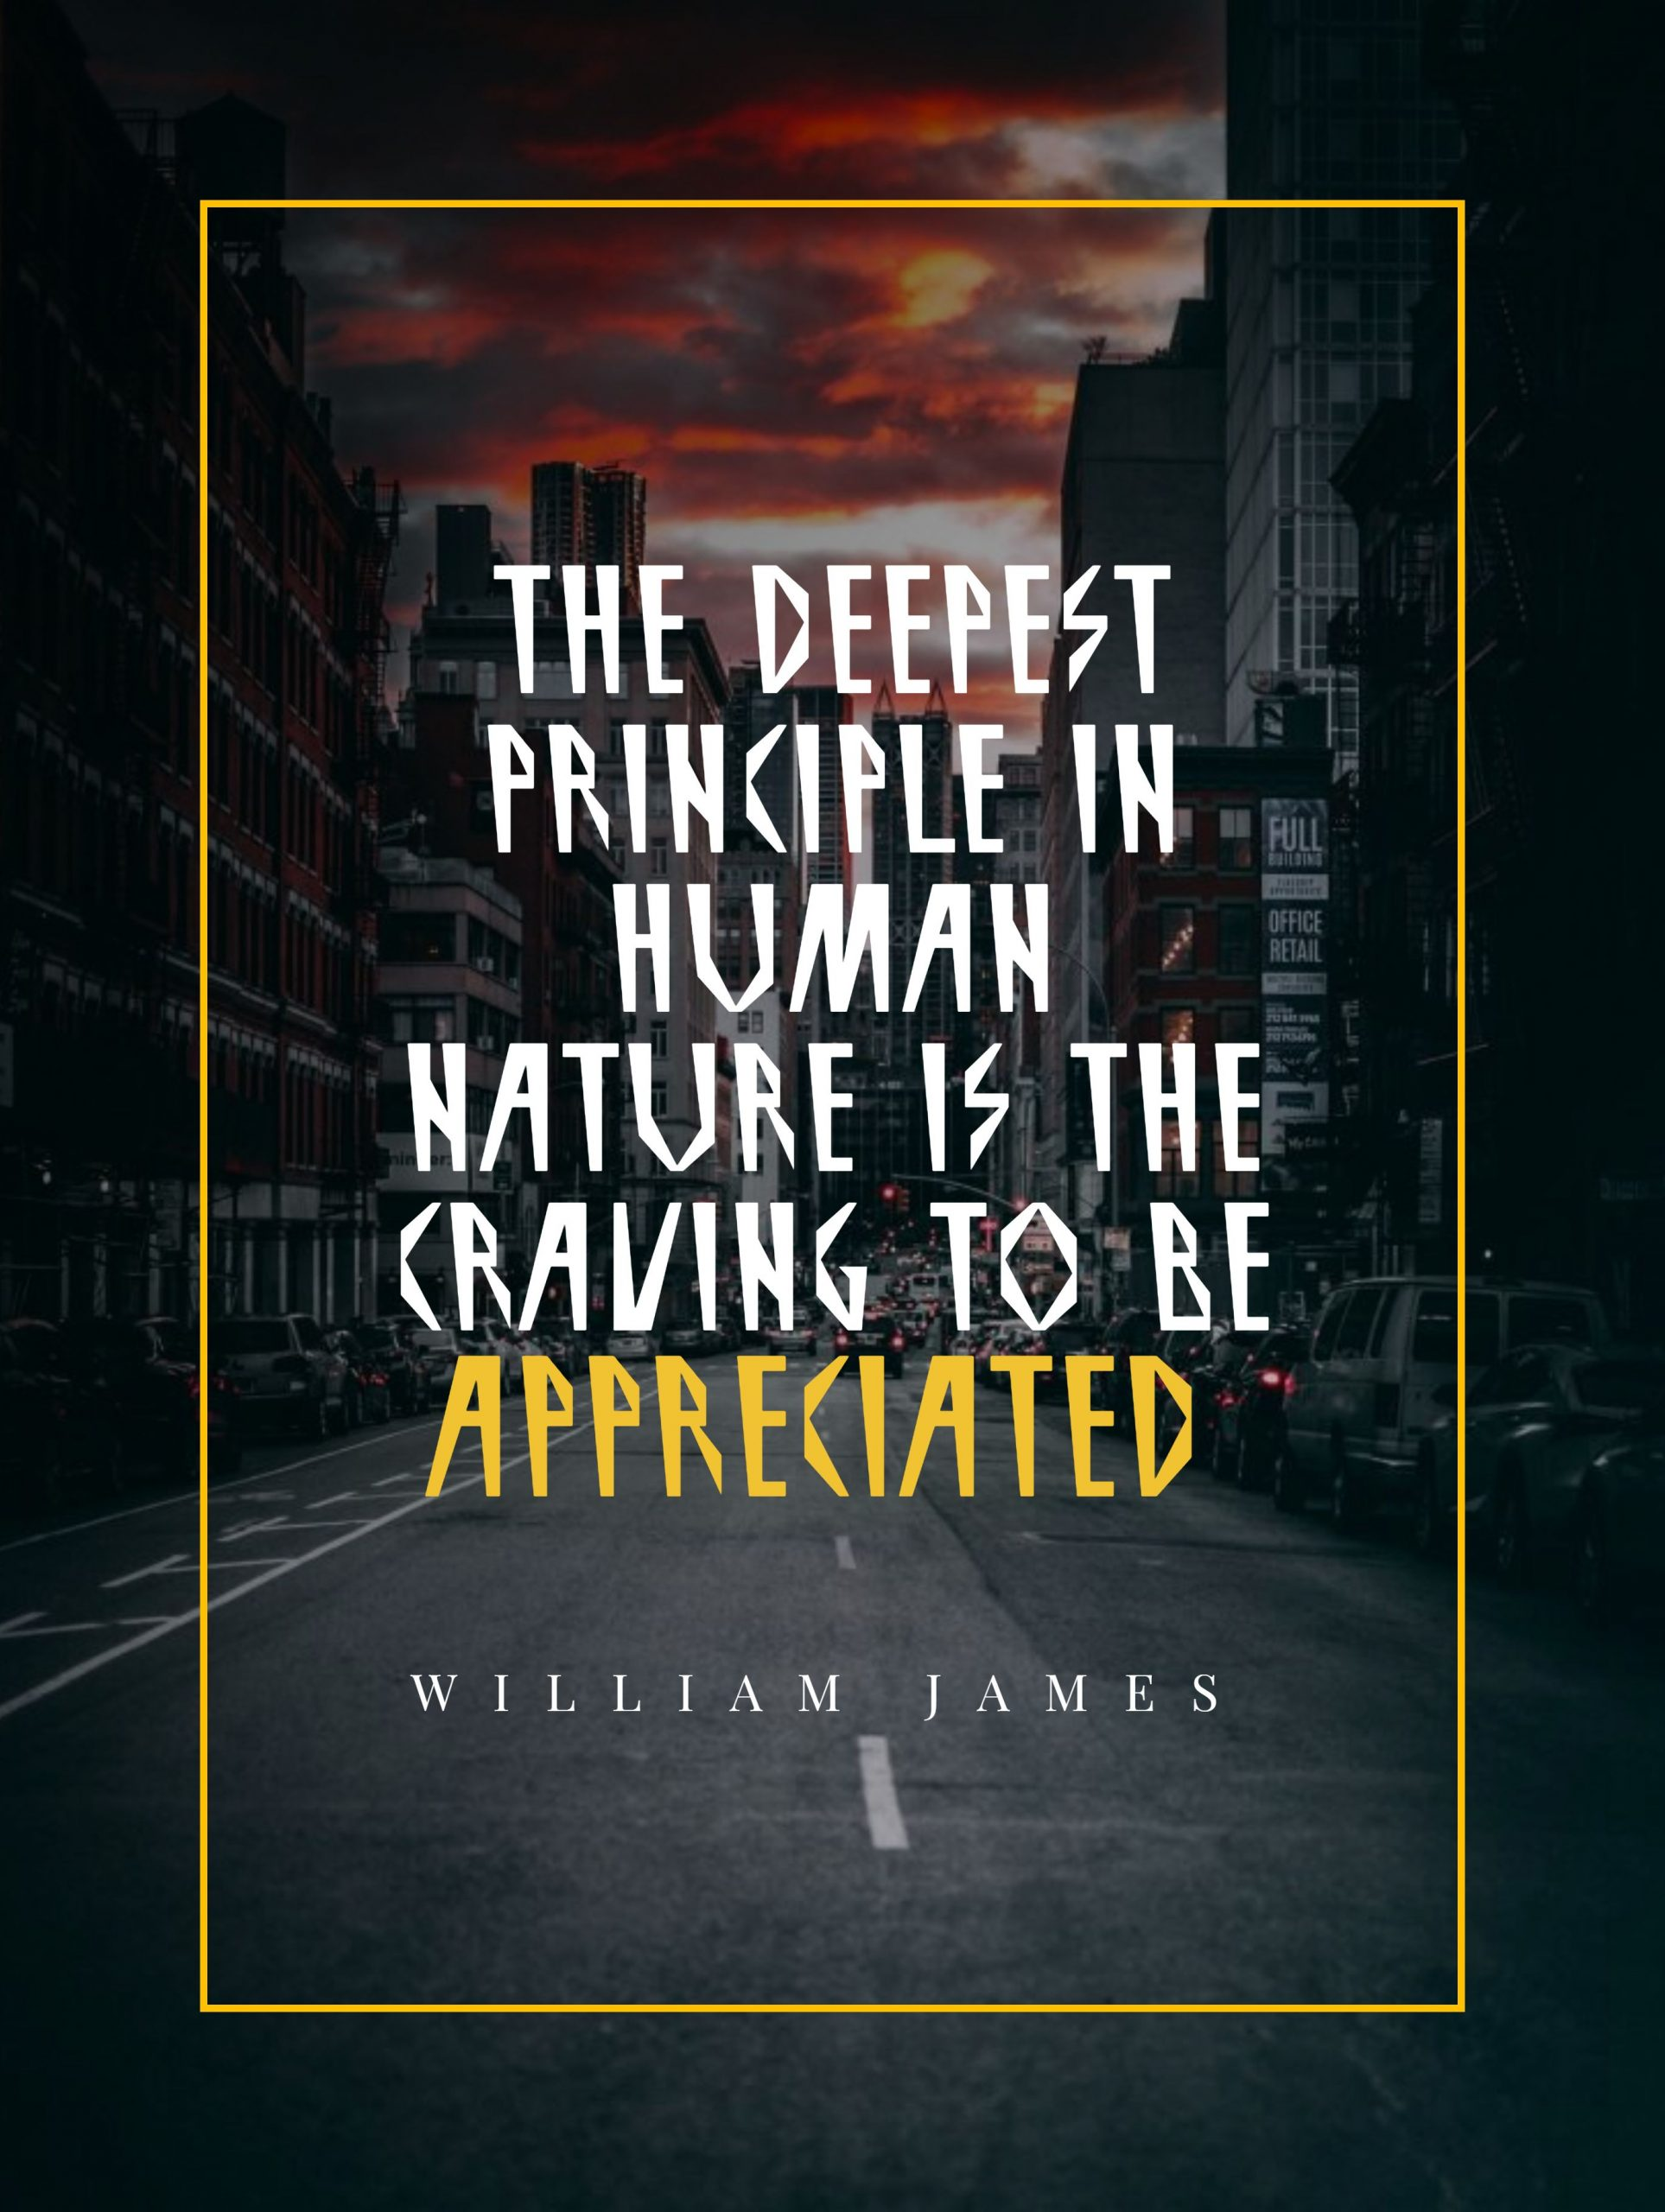 Quotes image of The deepest principle in human nature is the craving to be appreciated.